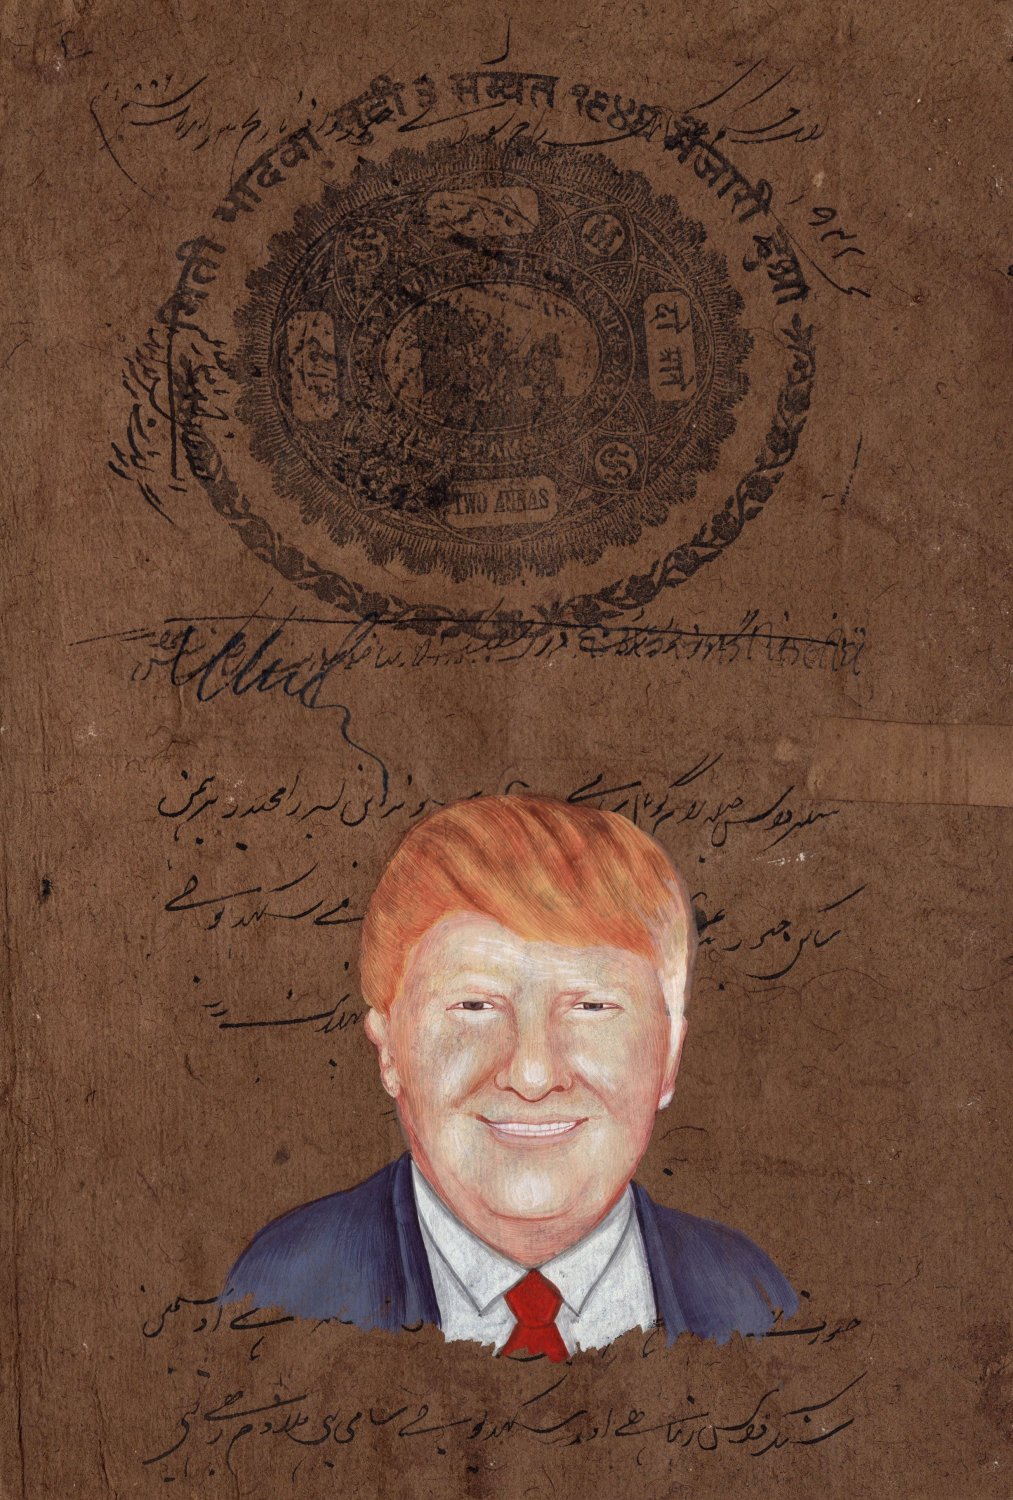 Donald Trump Art Handmade Indian Miniature Old Stamp Paper Portrait Painting